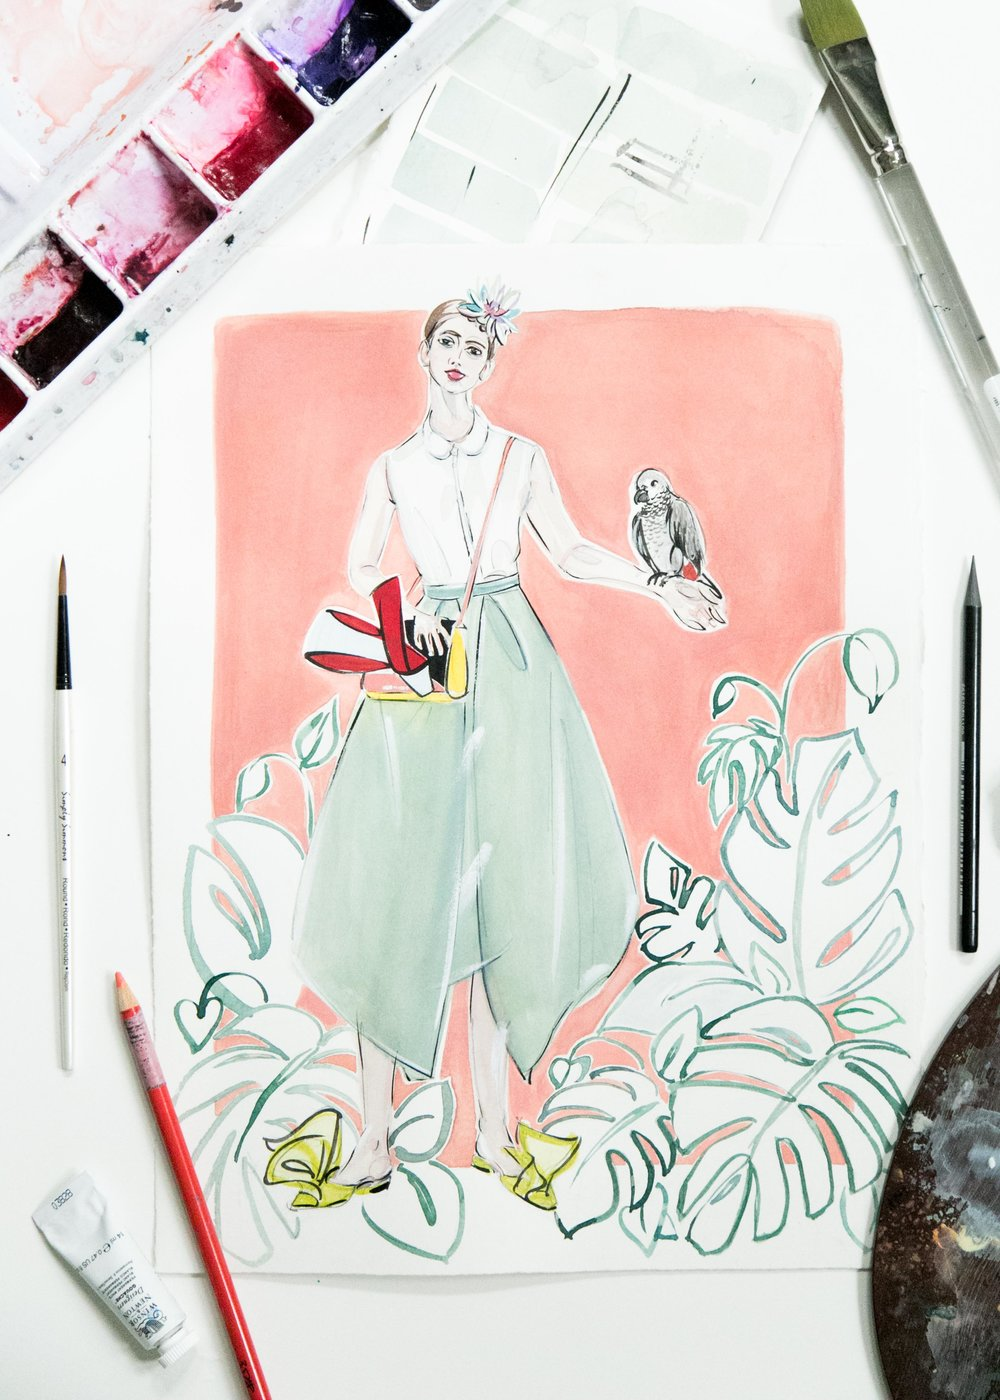 This illustration is based off of a look from Delpozo Pre-Fall 2018  collection . The illustration was created on 140 lb Arches hot press watercolor paper with watercolor, gouache, ink, chalk pencil, and pencil.